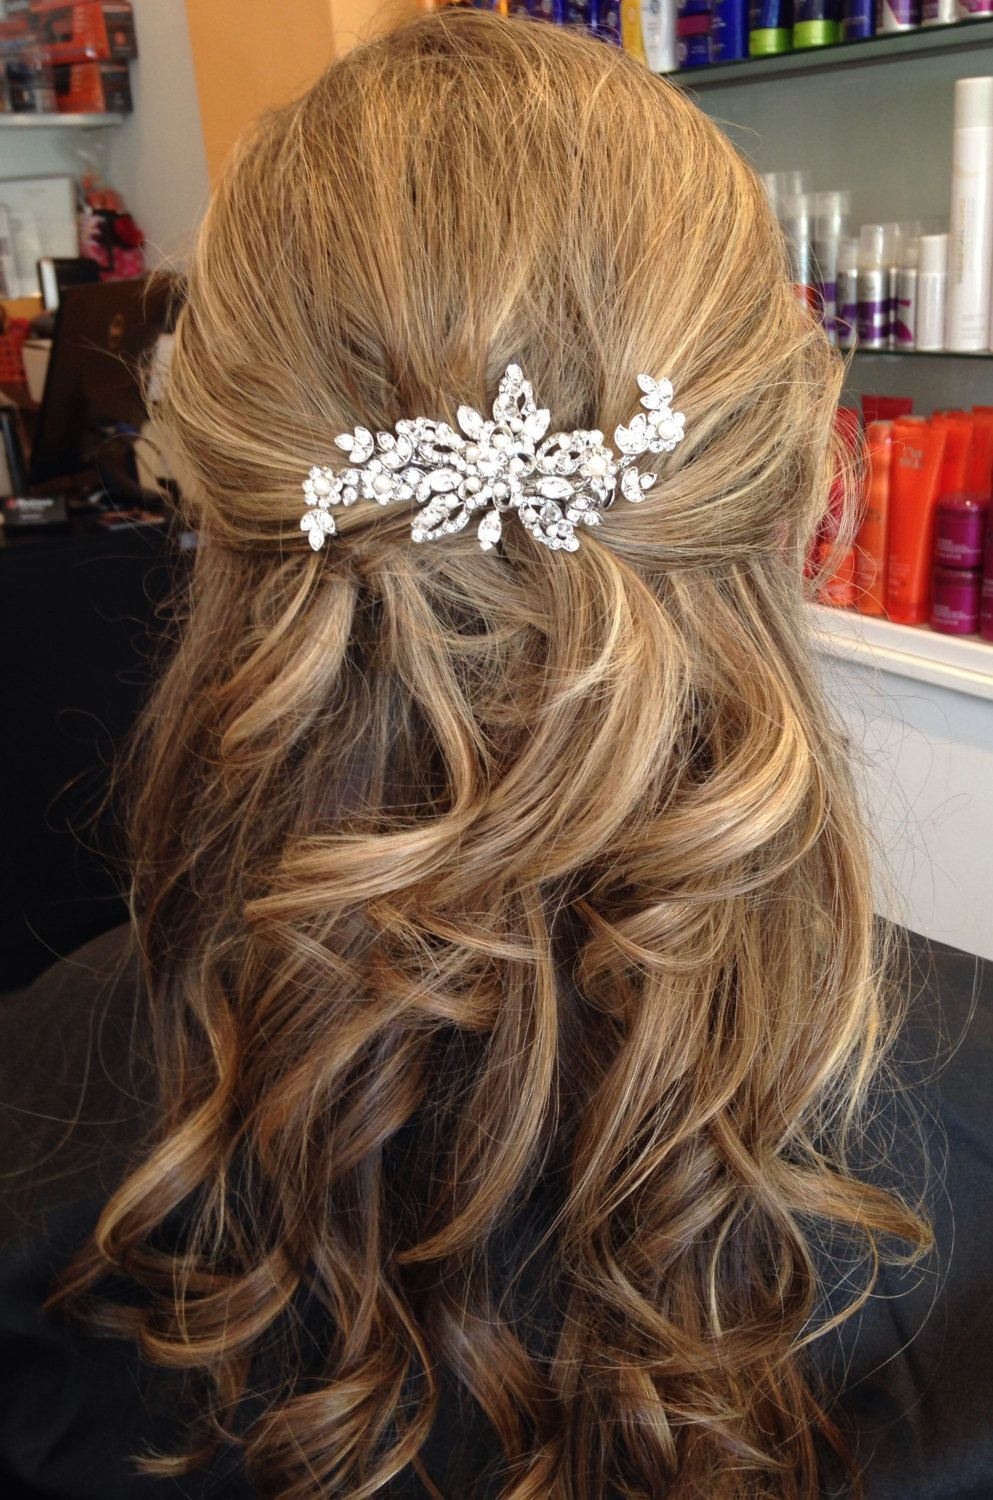 bridal hair accessory. rhinestone wedding hair clip. love the half